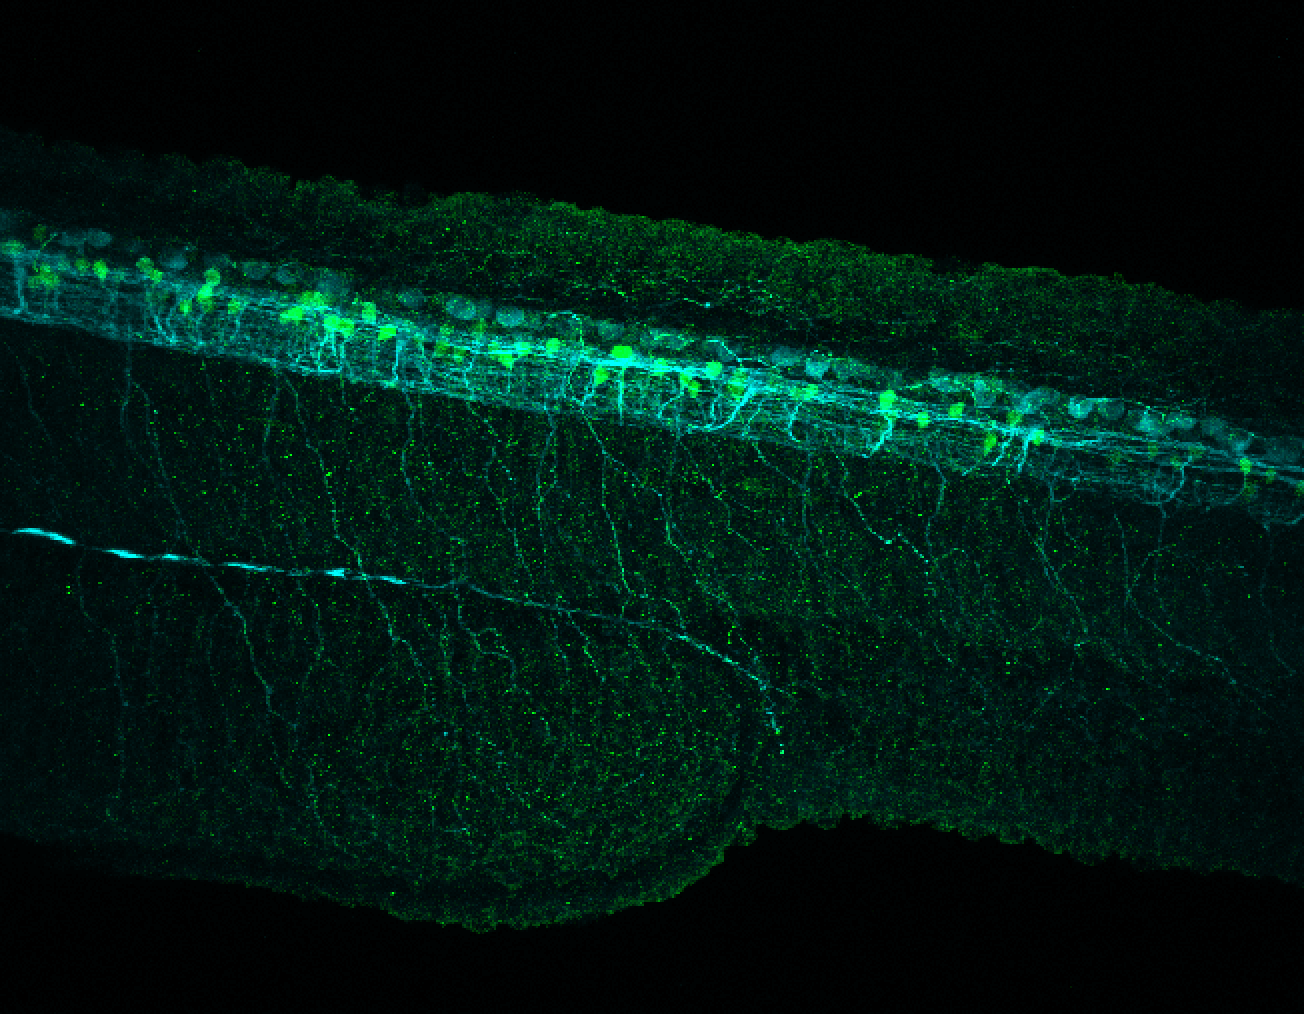 Tg(slc6a5:GFP) lateral 30hpf with tubulin(cyan)